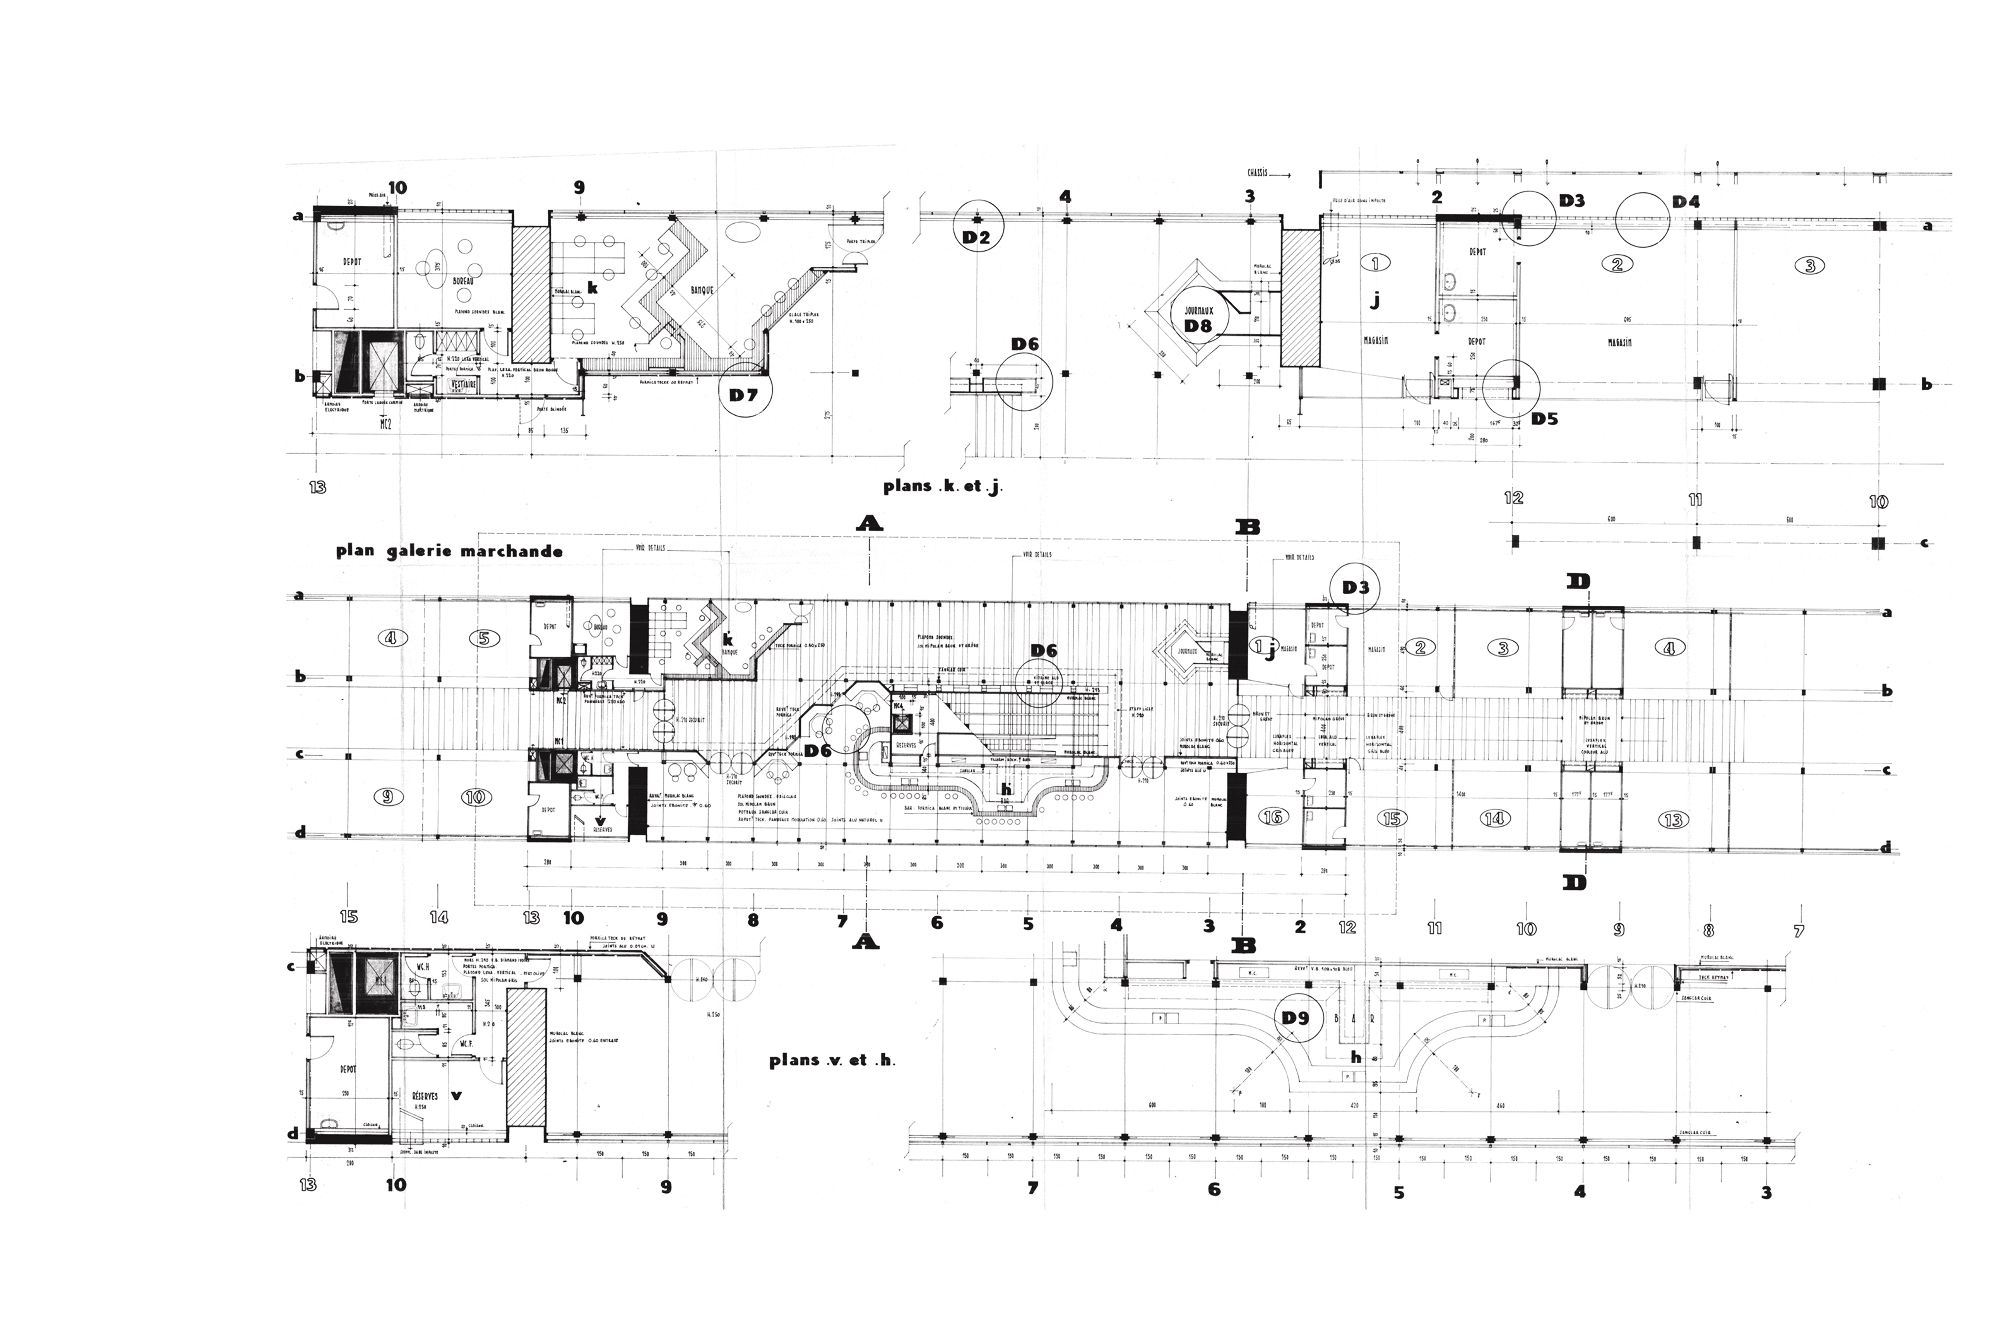 Plan Galerie Marchande | Shopping Mall Plan